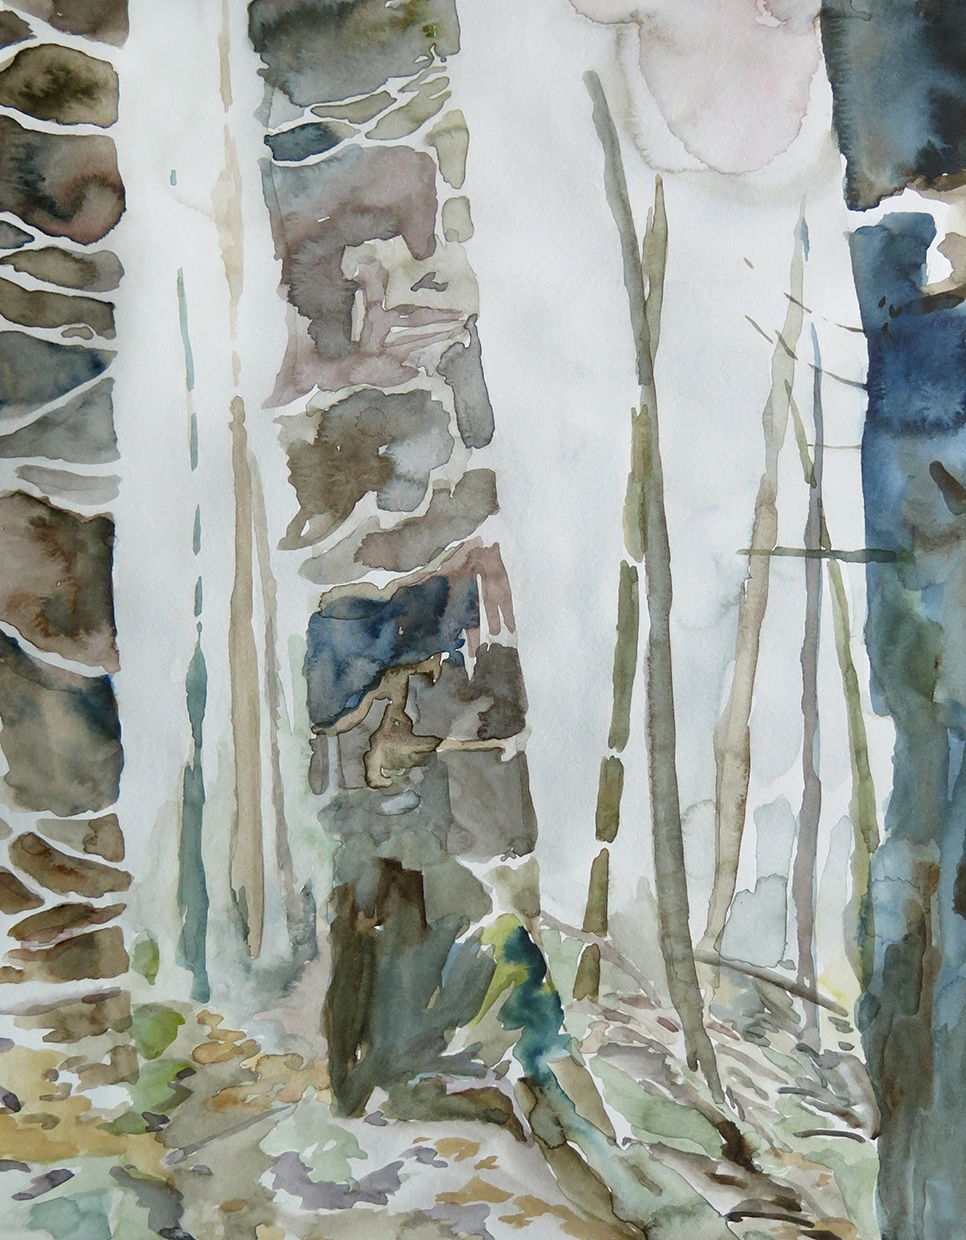 Forest, Dale   Watercolour on paper, 10.6 in. x 13.8 in. 2013